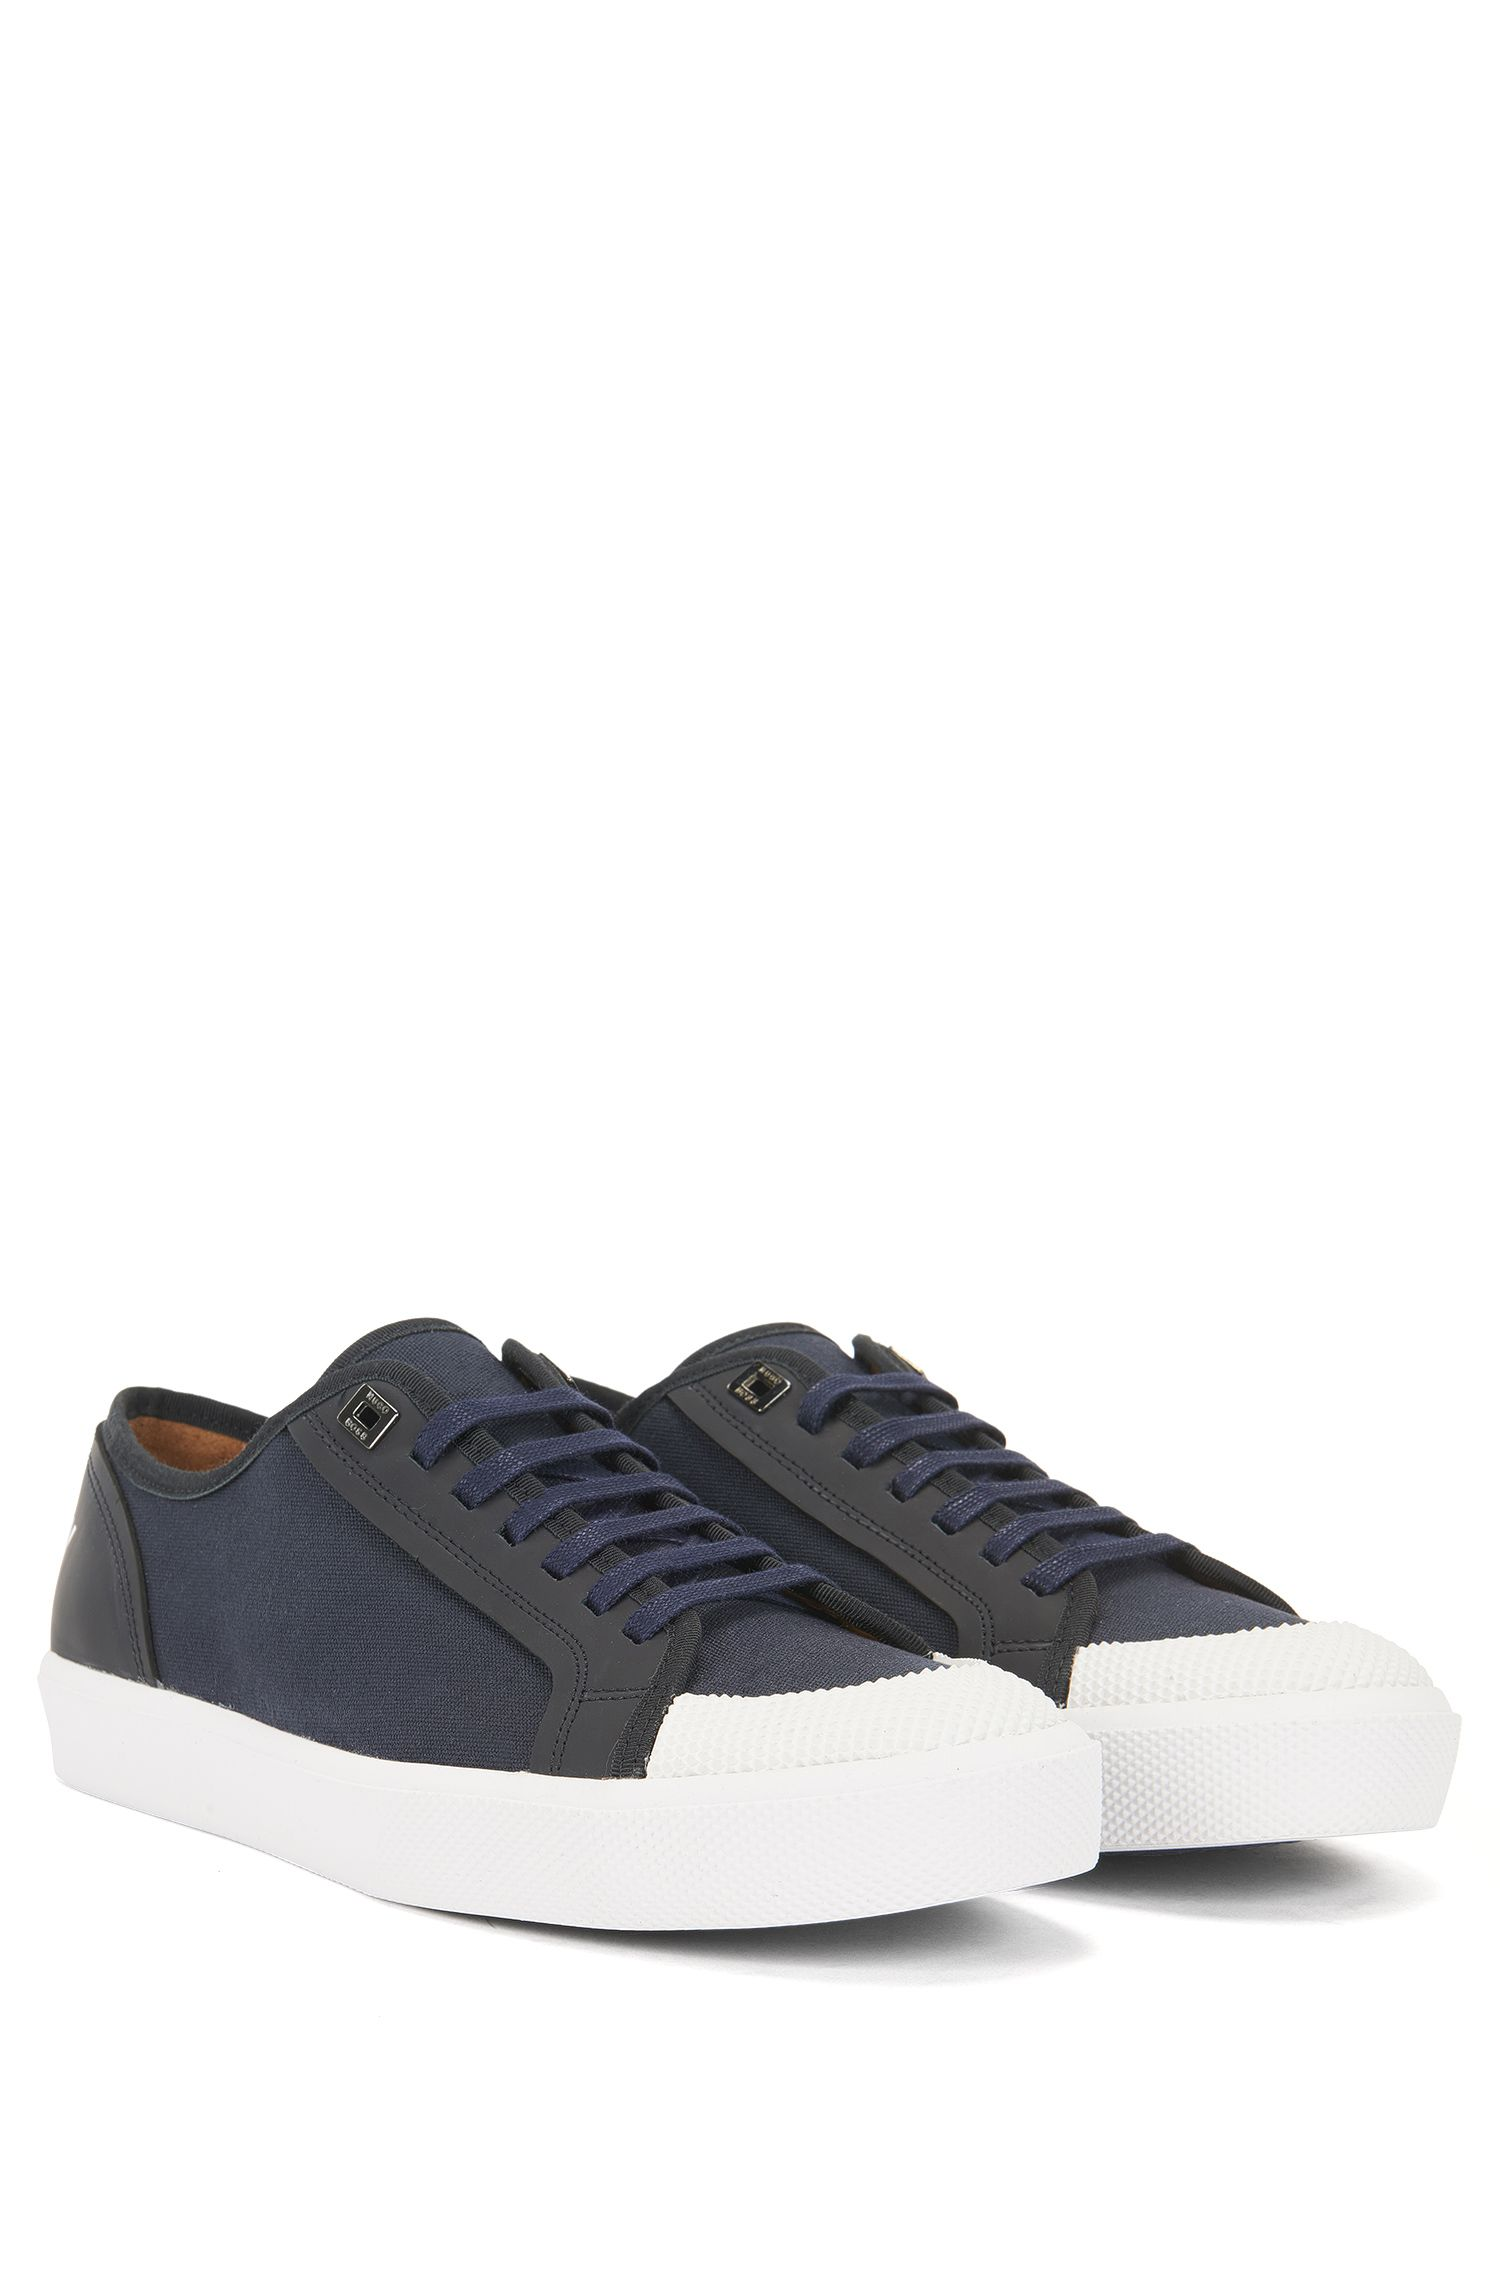 Runway Edition low-top trainers in cotton and leather